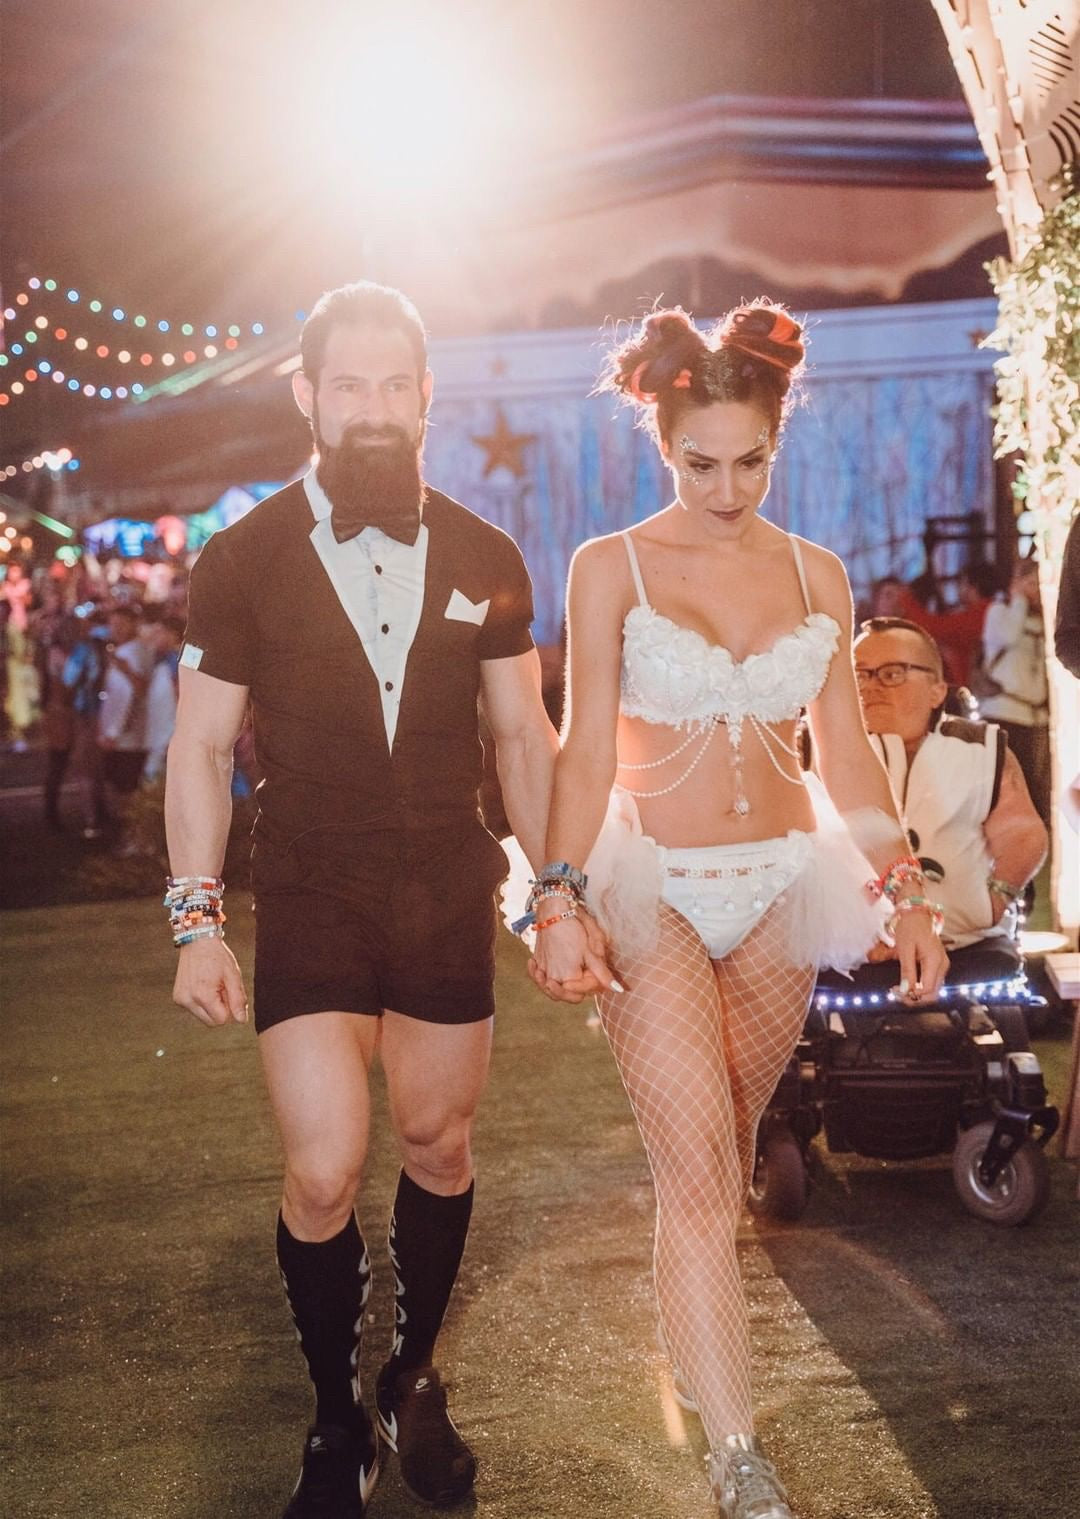 male romper wedding tuxedo